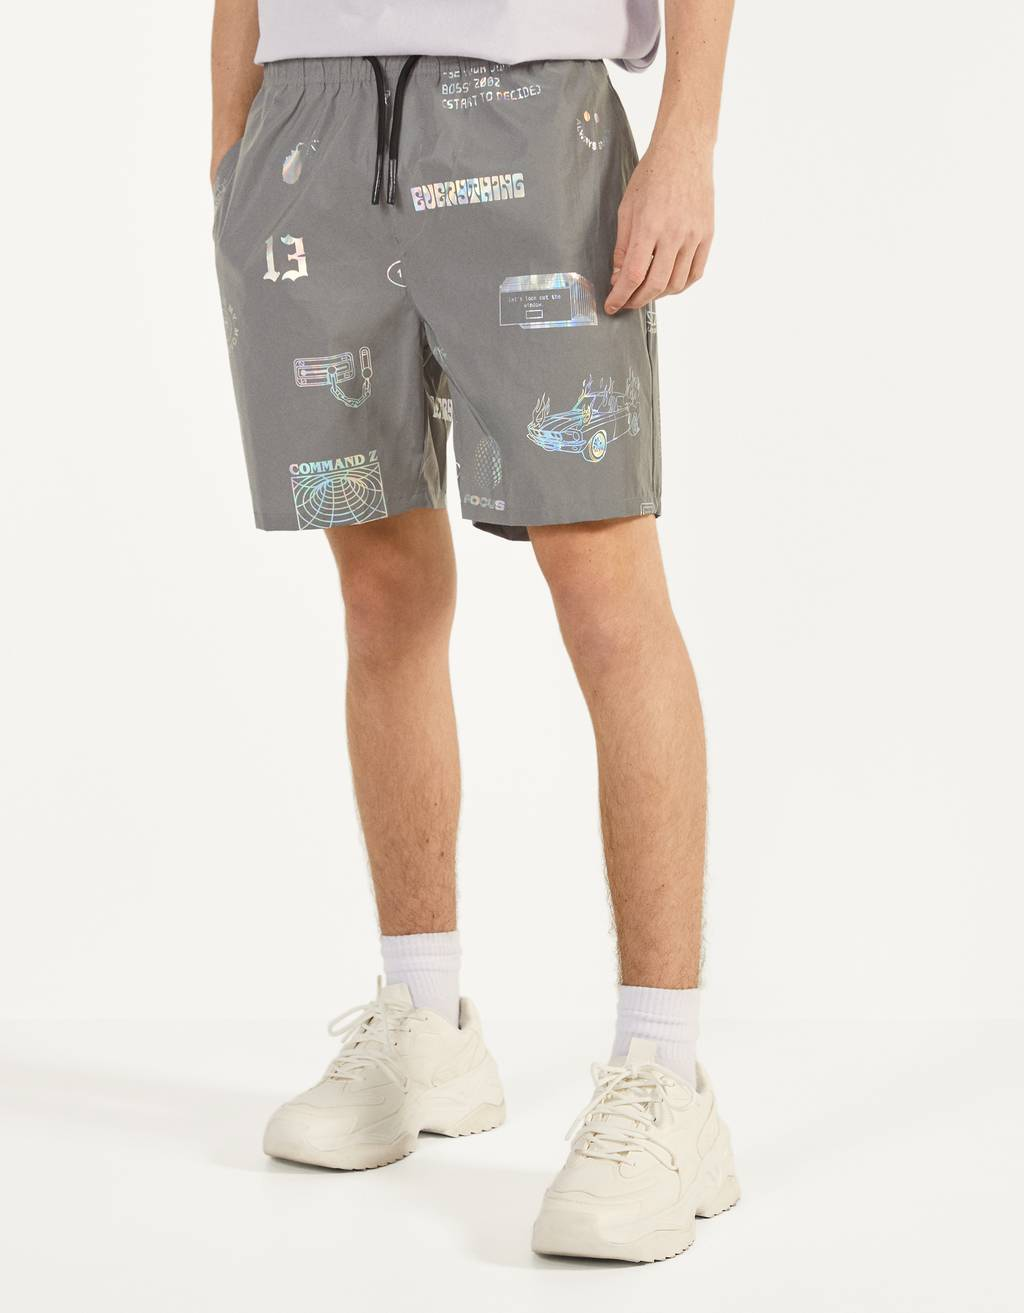 Bermuda shorts with reflective print